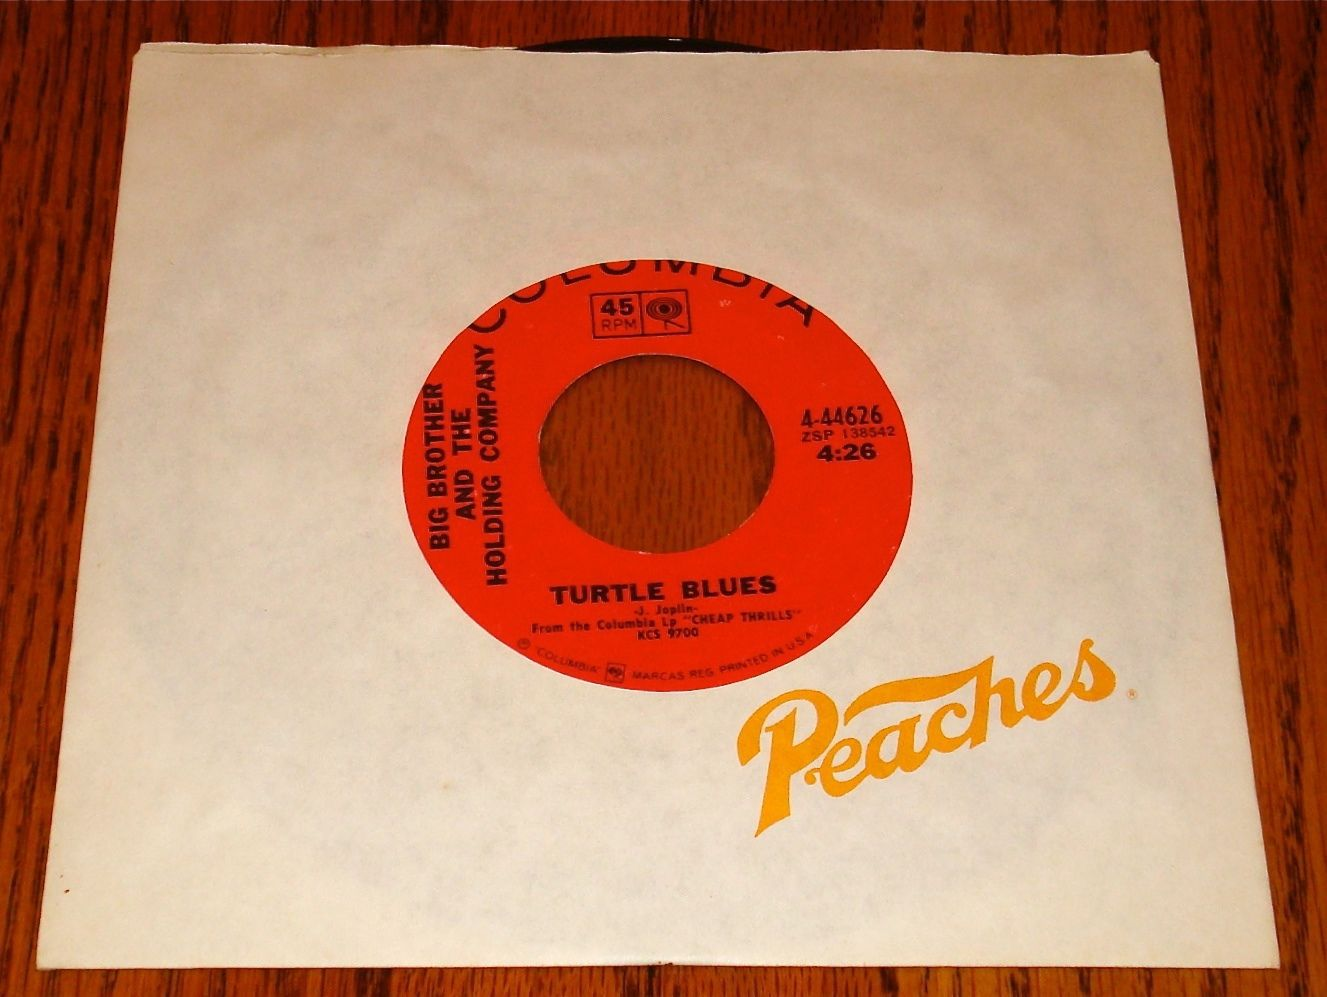 BIG BROTHER & THE HOLDING COMPANY/JANIS JOPLIN PIECES OF MY HEART ORIGINAL 45